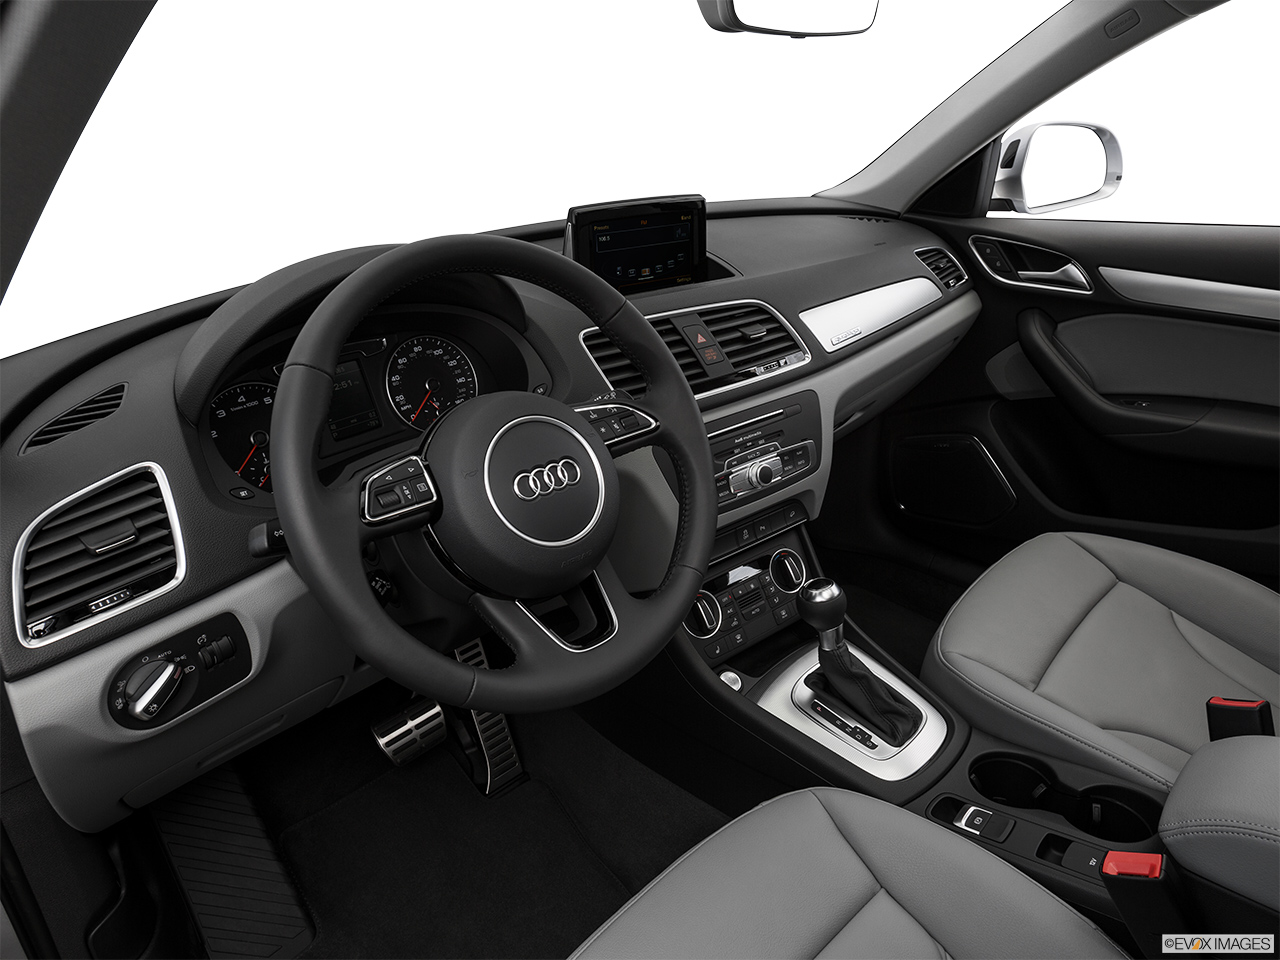 car pictures list for audi q3 2016 2 0l 220 hp uae. Black Bedroom Furniture Sets. Home Design Ideas